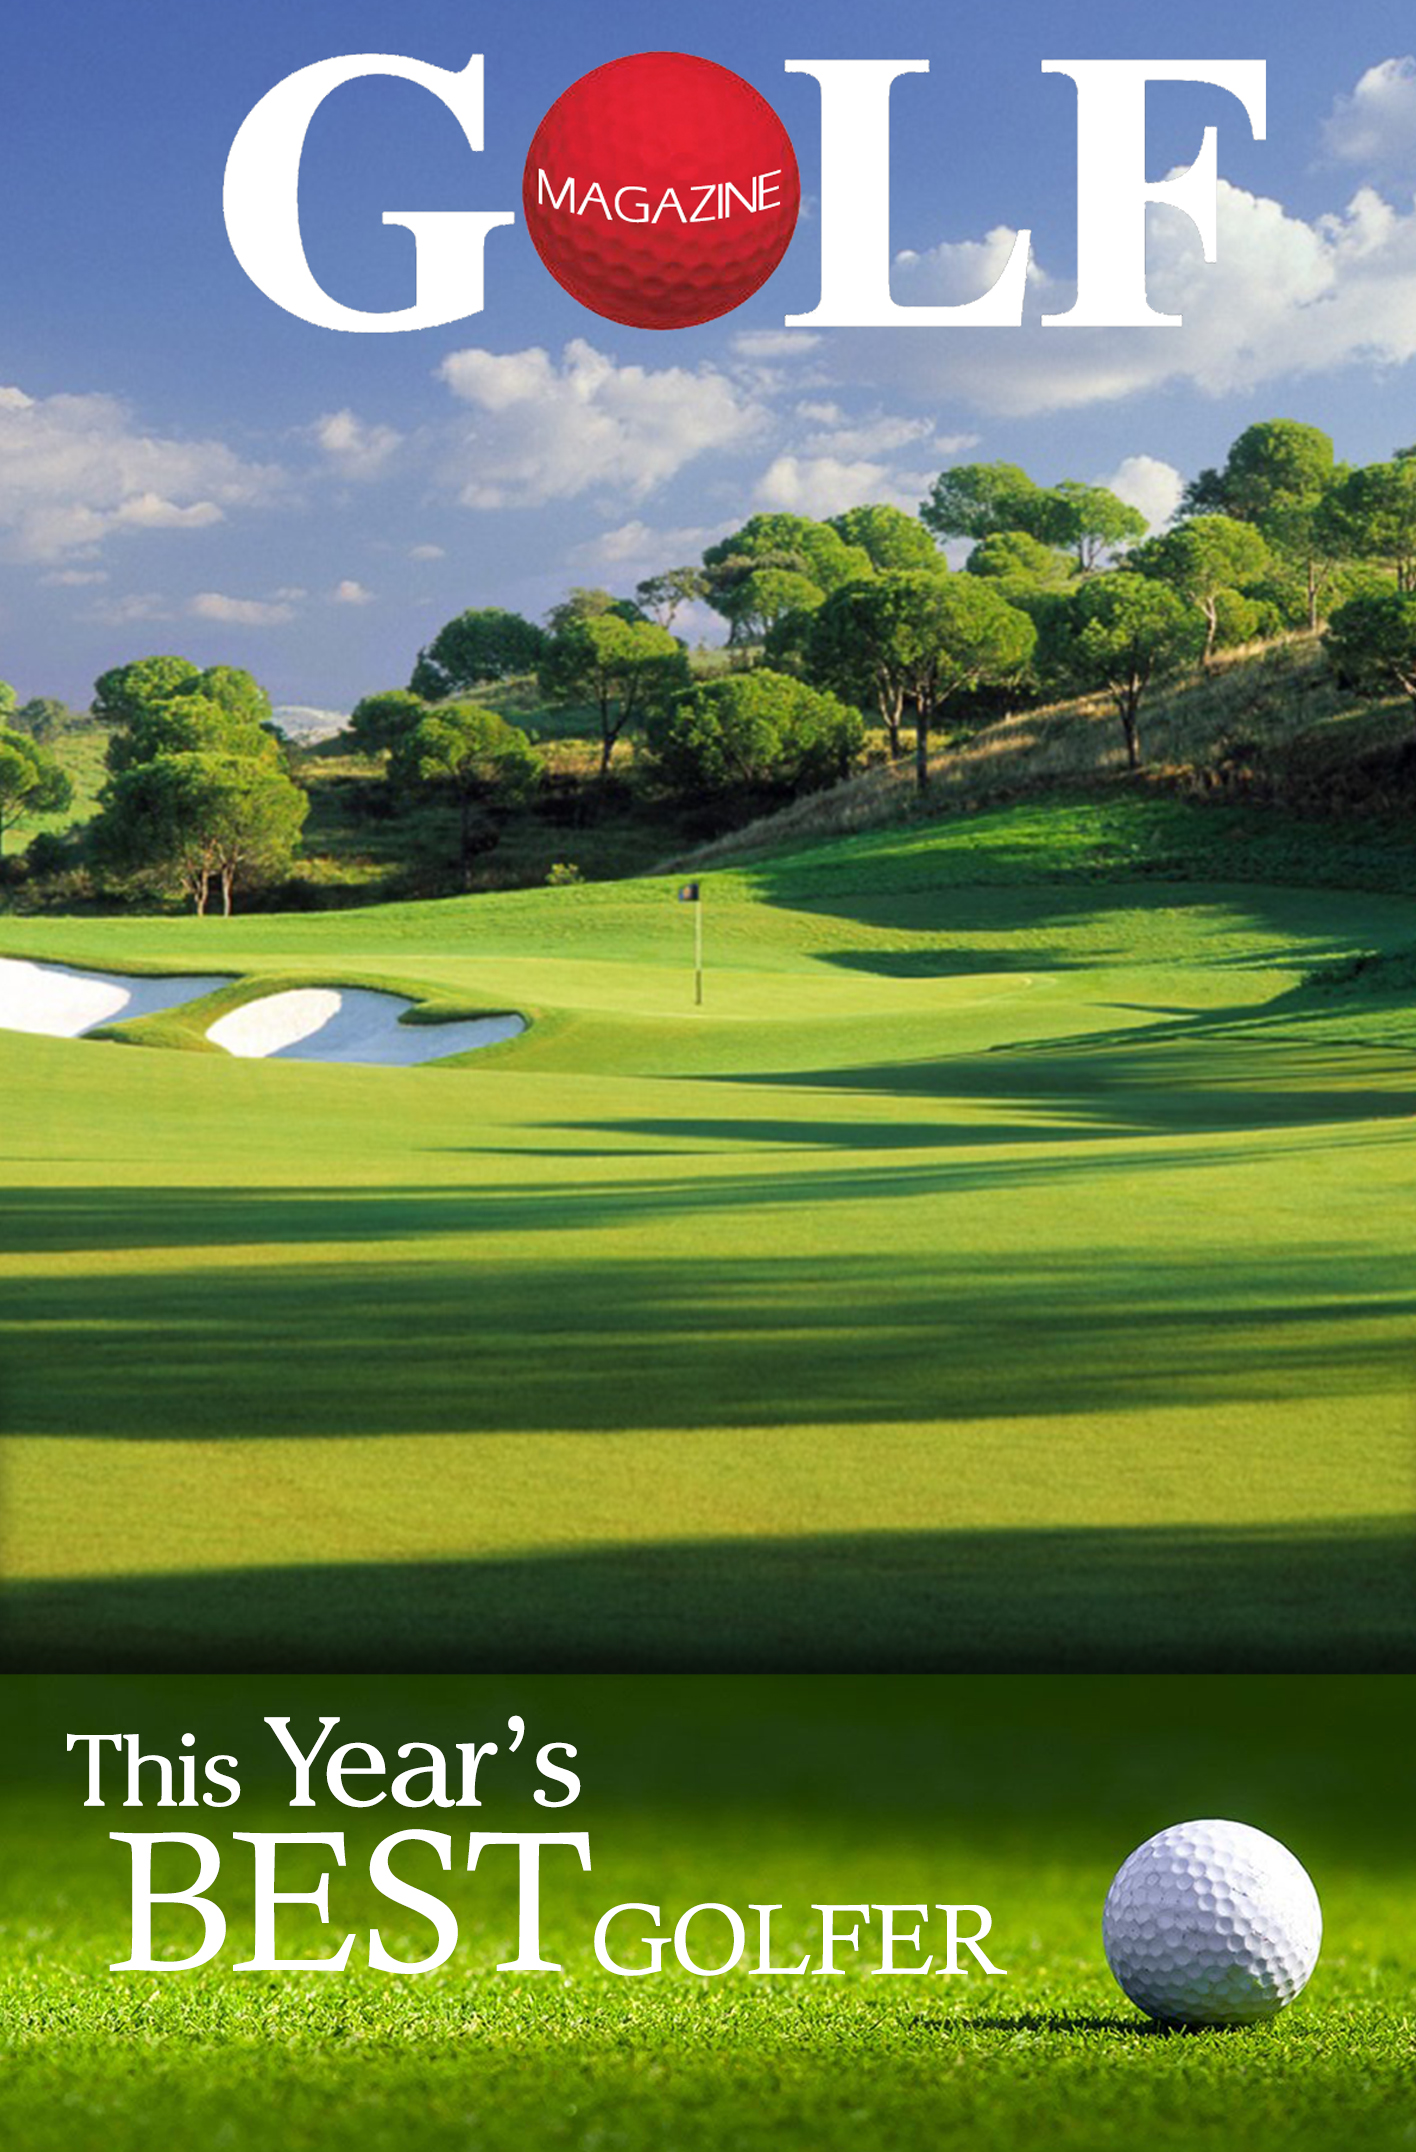 Magazine - Best Golfer